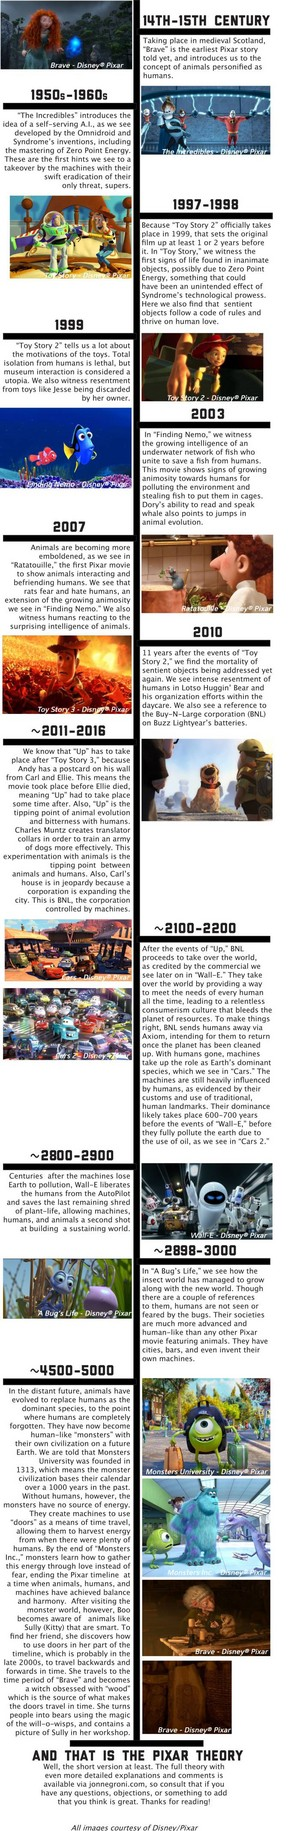 The Pixar Theory Infographic- made par Jon Negroni